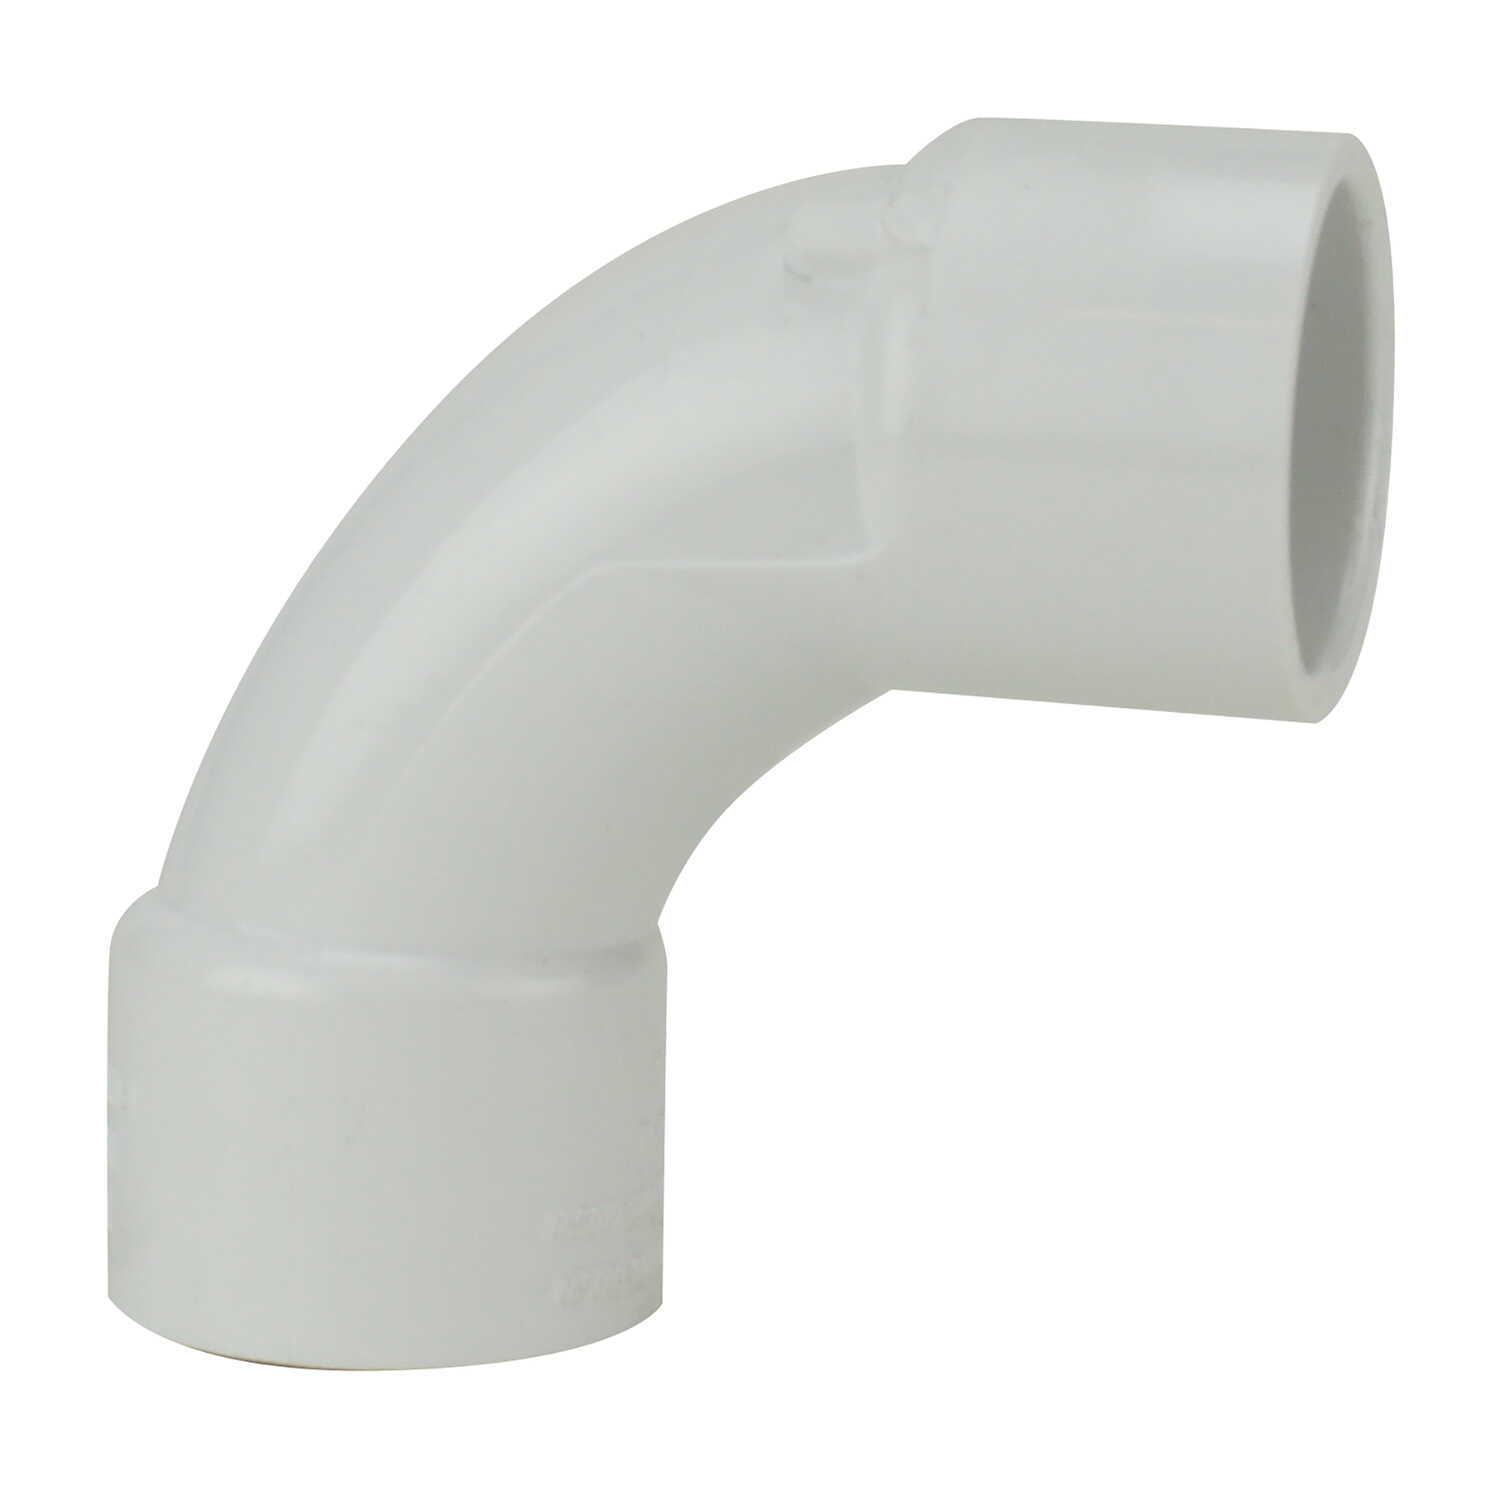 Lasco  Schedule 40  1-1/2 in. Slip   x 1-1/2 in. Dia. Slip  PVC  Elbow